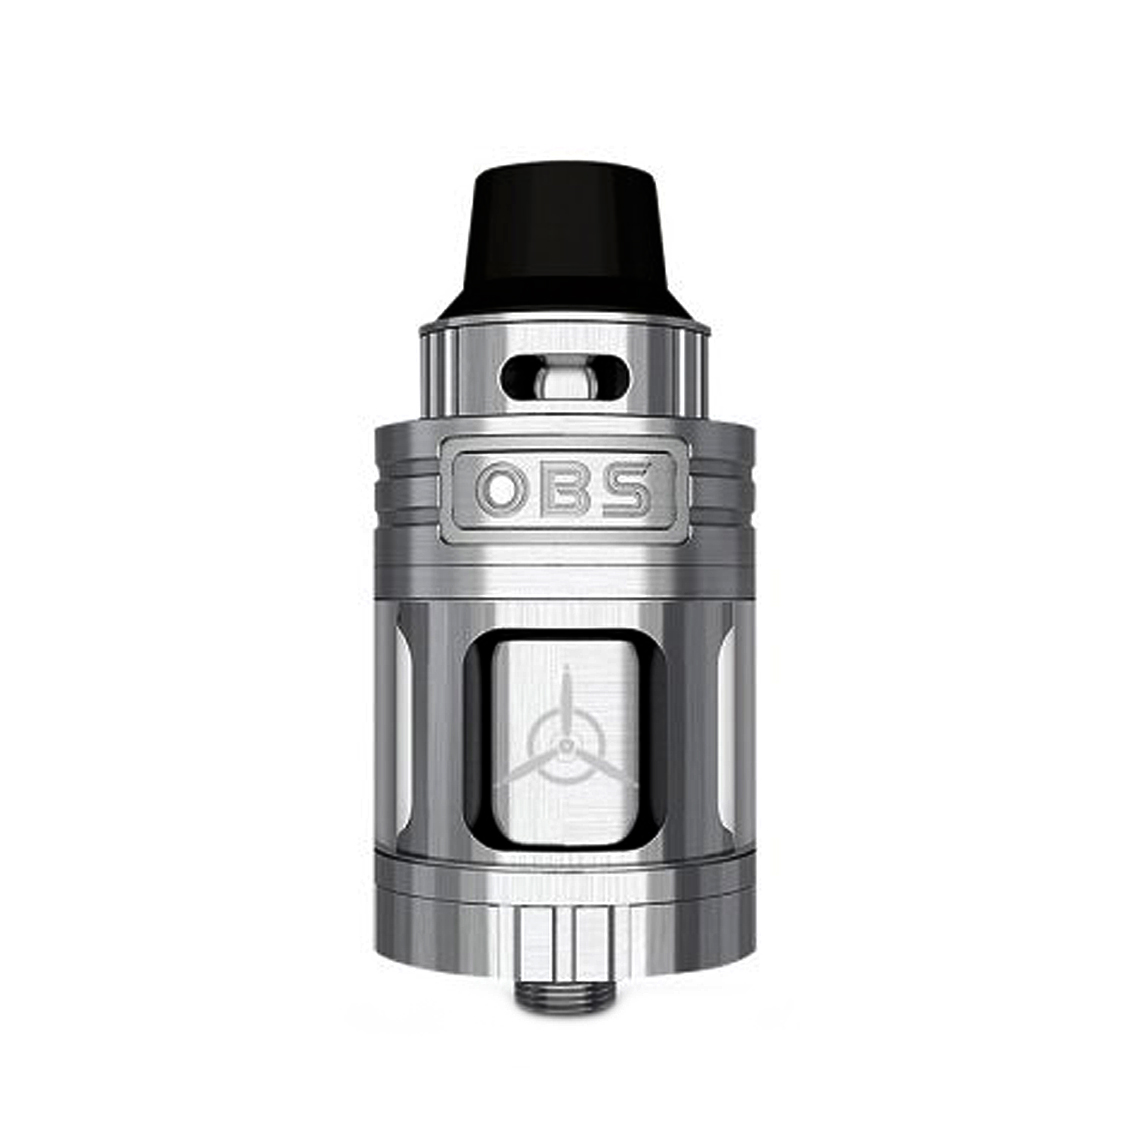 OBS Engine RTA in Steel